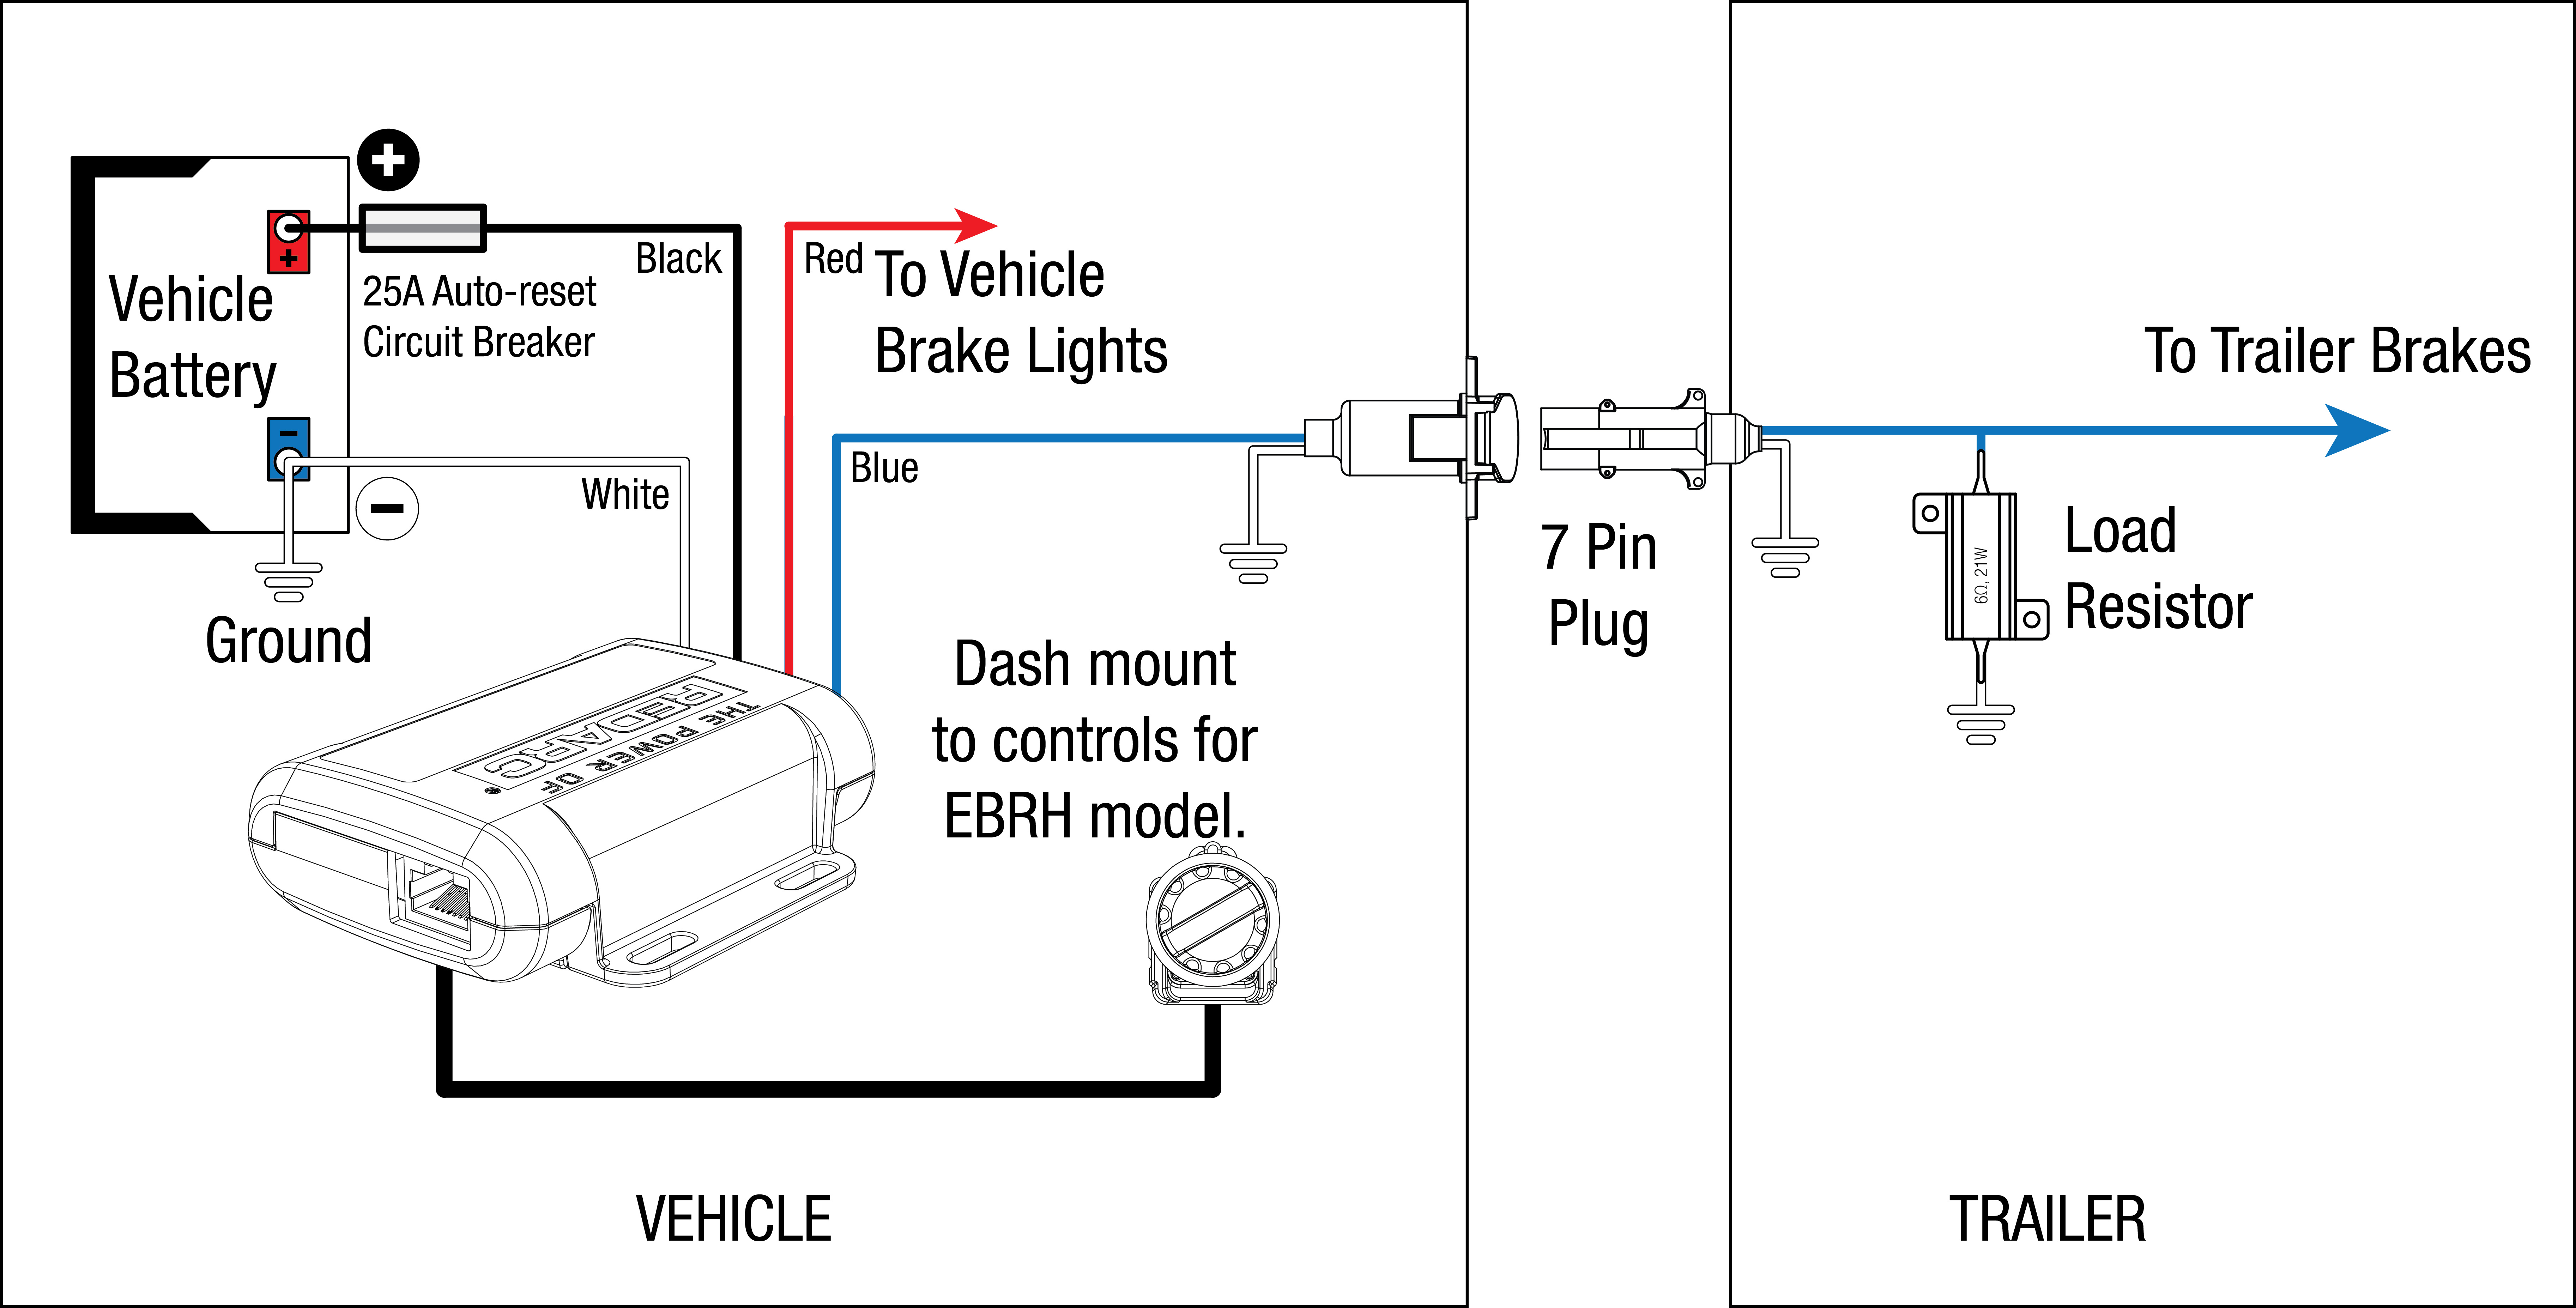 Tow-Pro Electric/hydraulic Braking Systems | Redarc Electronics - Wiring Diagram On Trailer Brakes